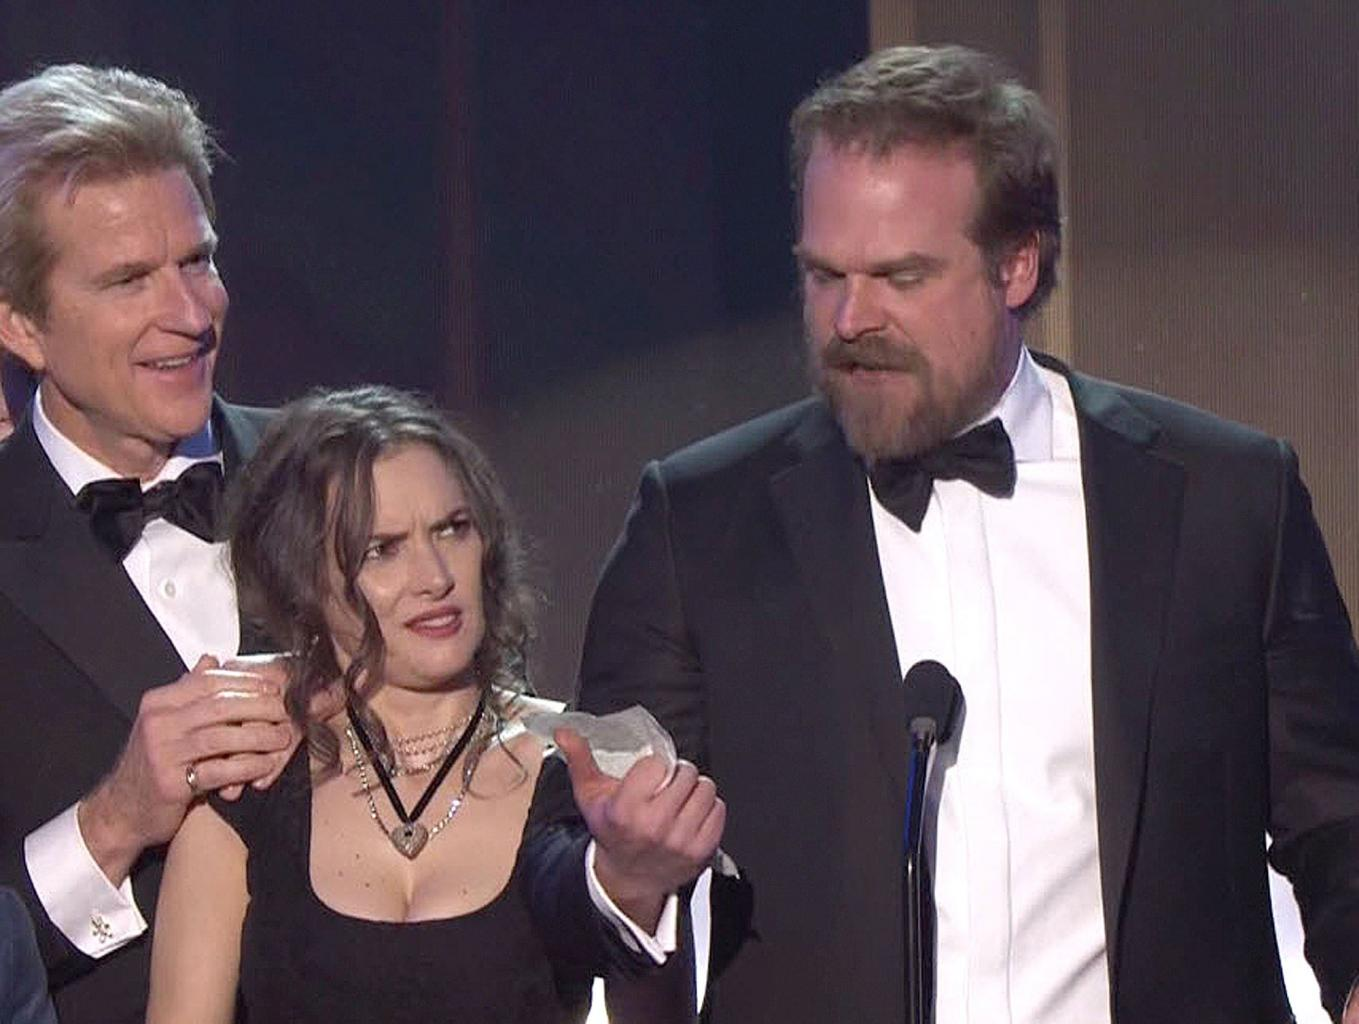 David Harbour Reveals the Story Behind Winona Ryder       's Meme-Inducing SAG Awards Facial Expressions